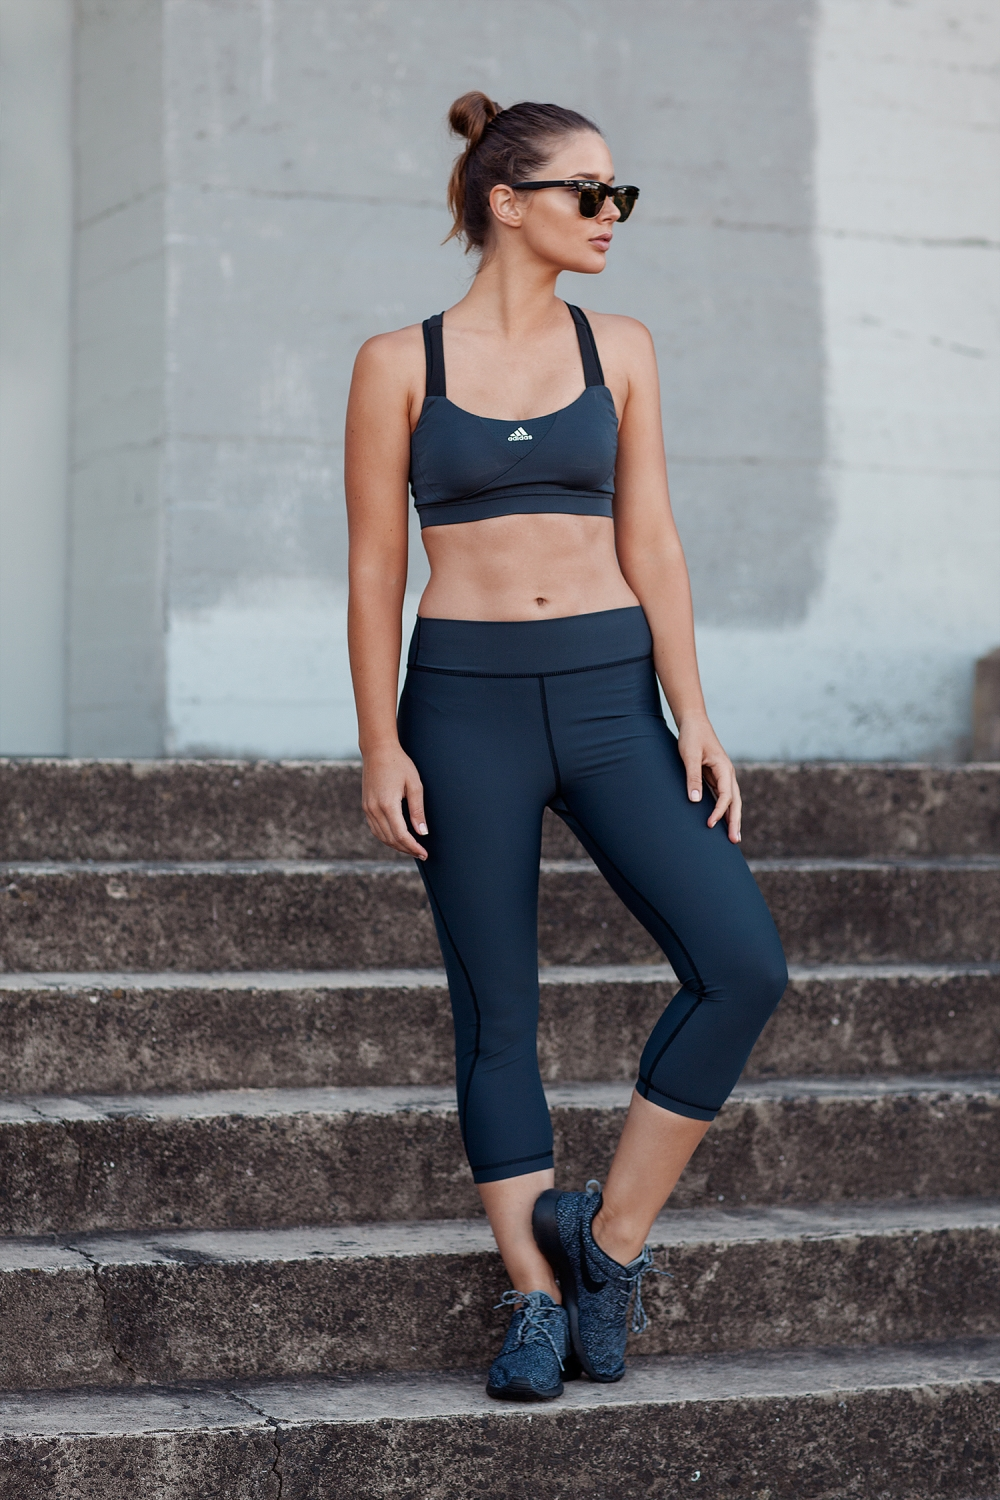 harper and harley-activewear-gym-workout-fitness-style runner-theupside-3